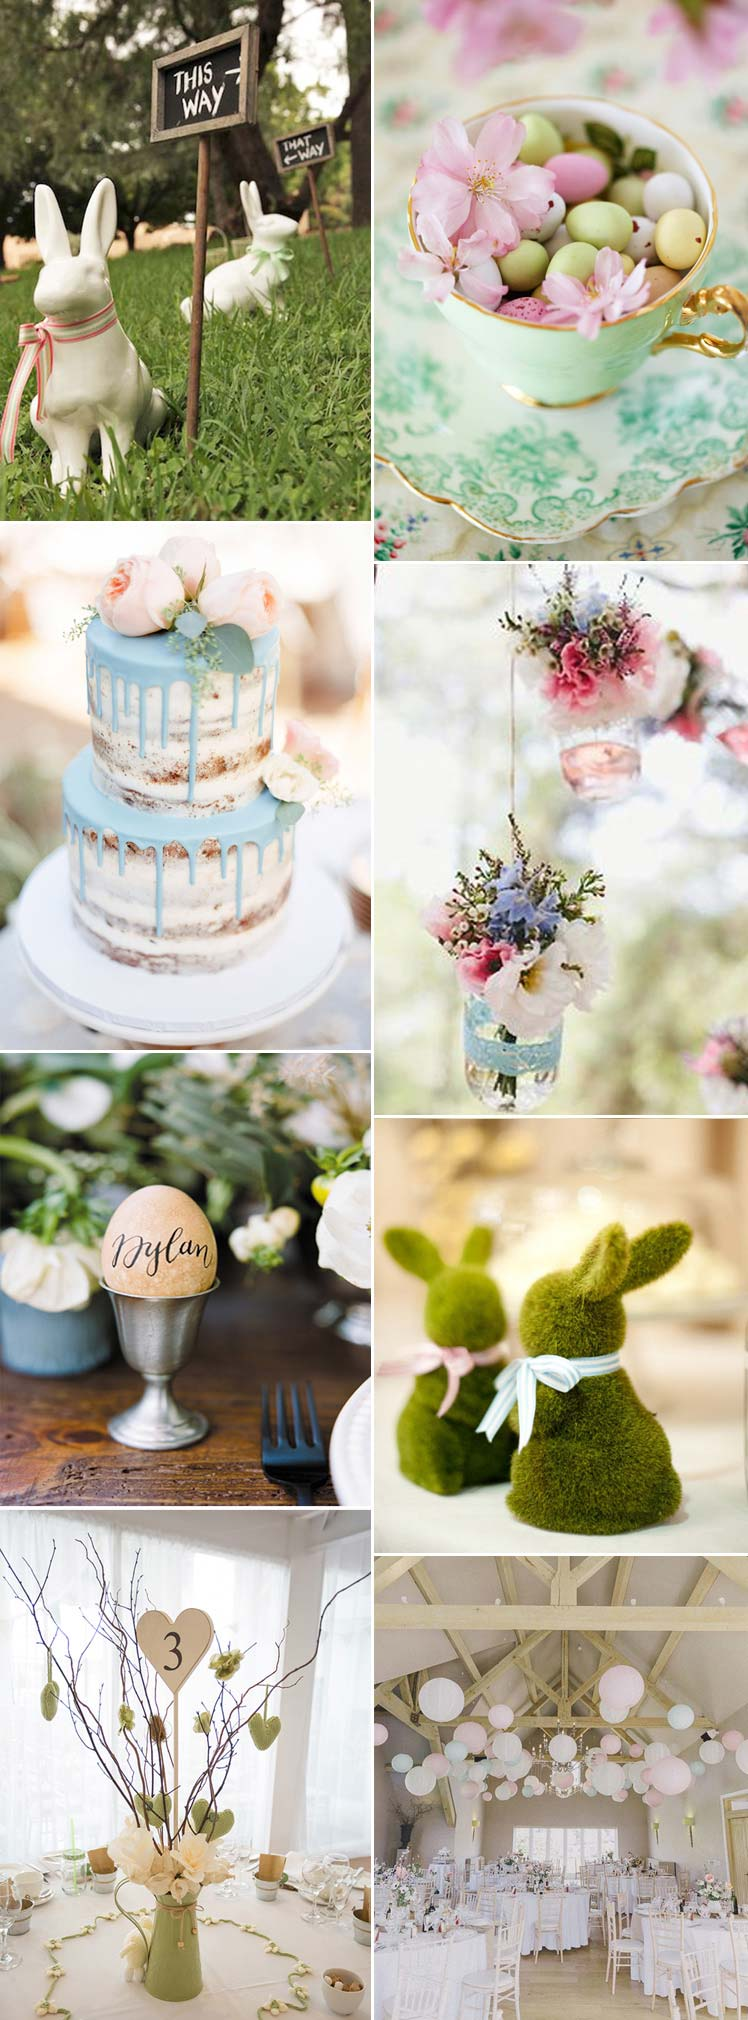 Pretty Easter wedding inspiration